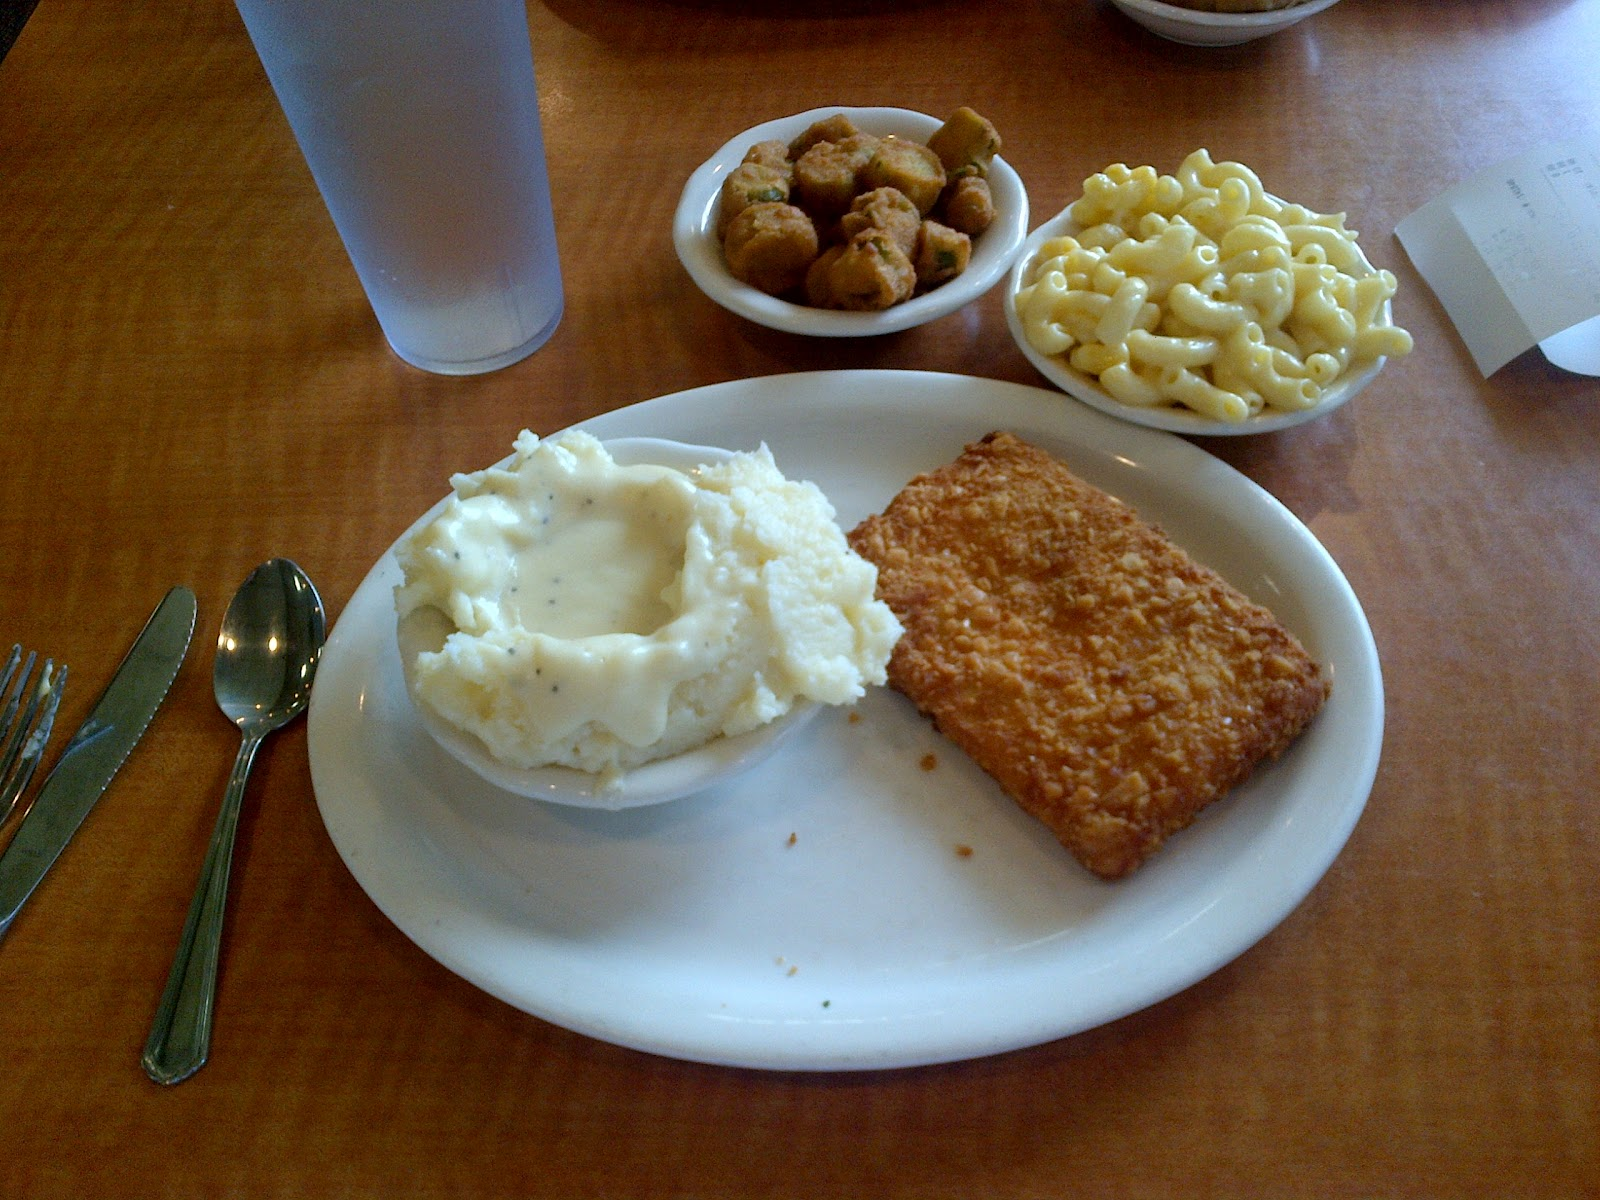 Chungry luby 39 s waugh street houston texas for Lubys fried fish